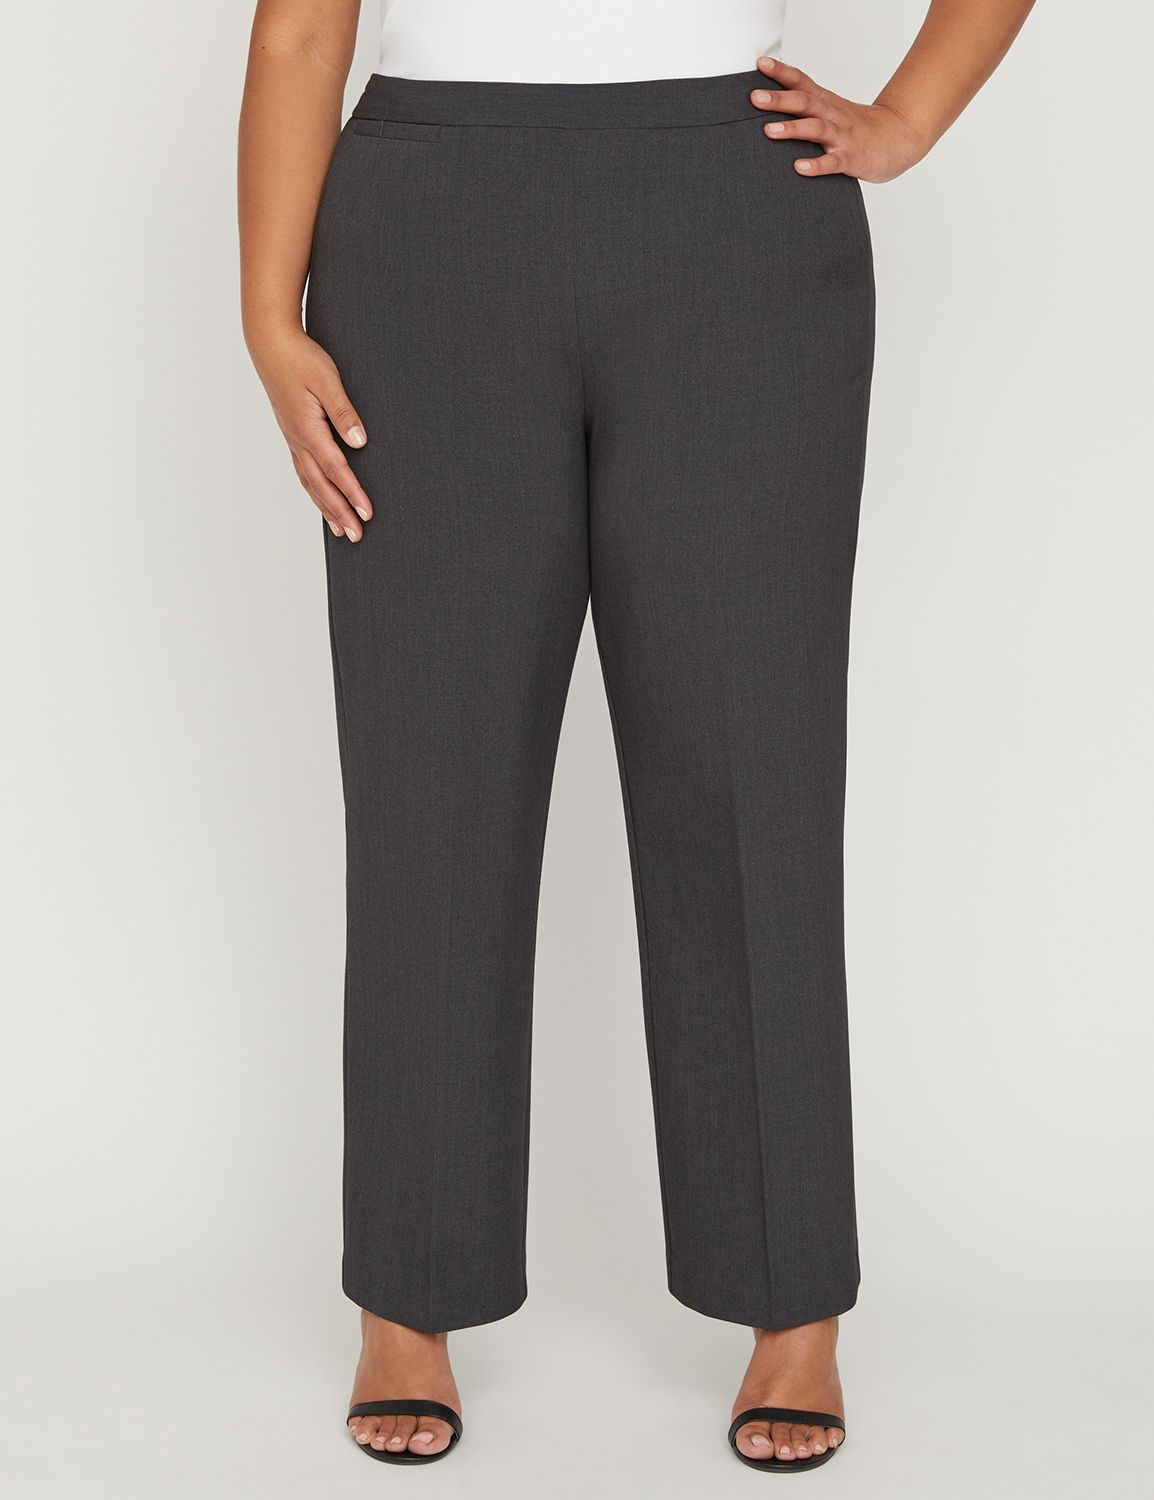 Heathered Refined Pant Heathered Refined Fit Pant MP-300044110